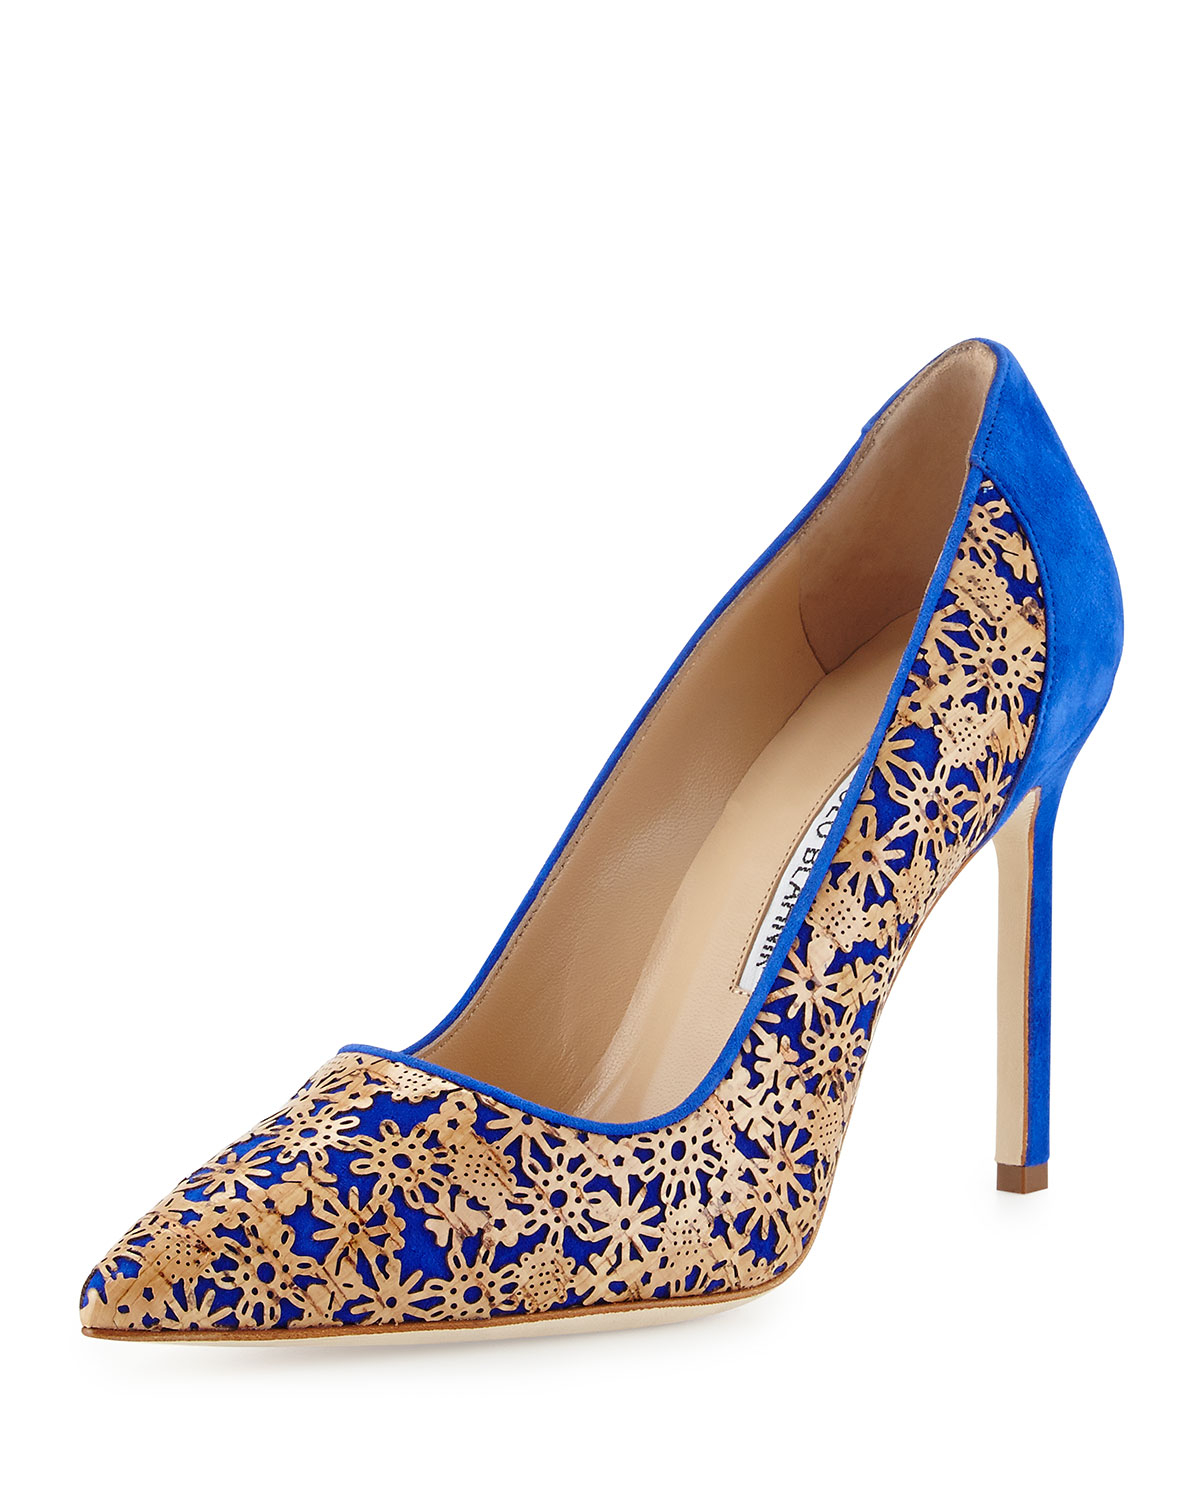 Manolo blahnik ichi laser cut cork suede pump in blue lyst for Who is manolo blahnik